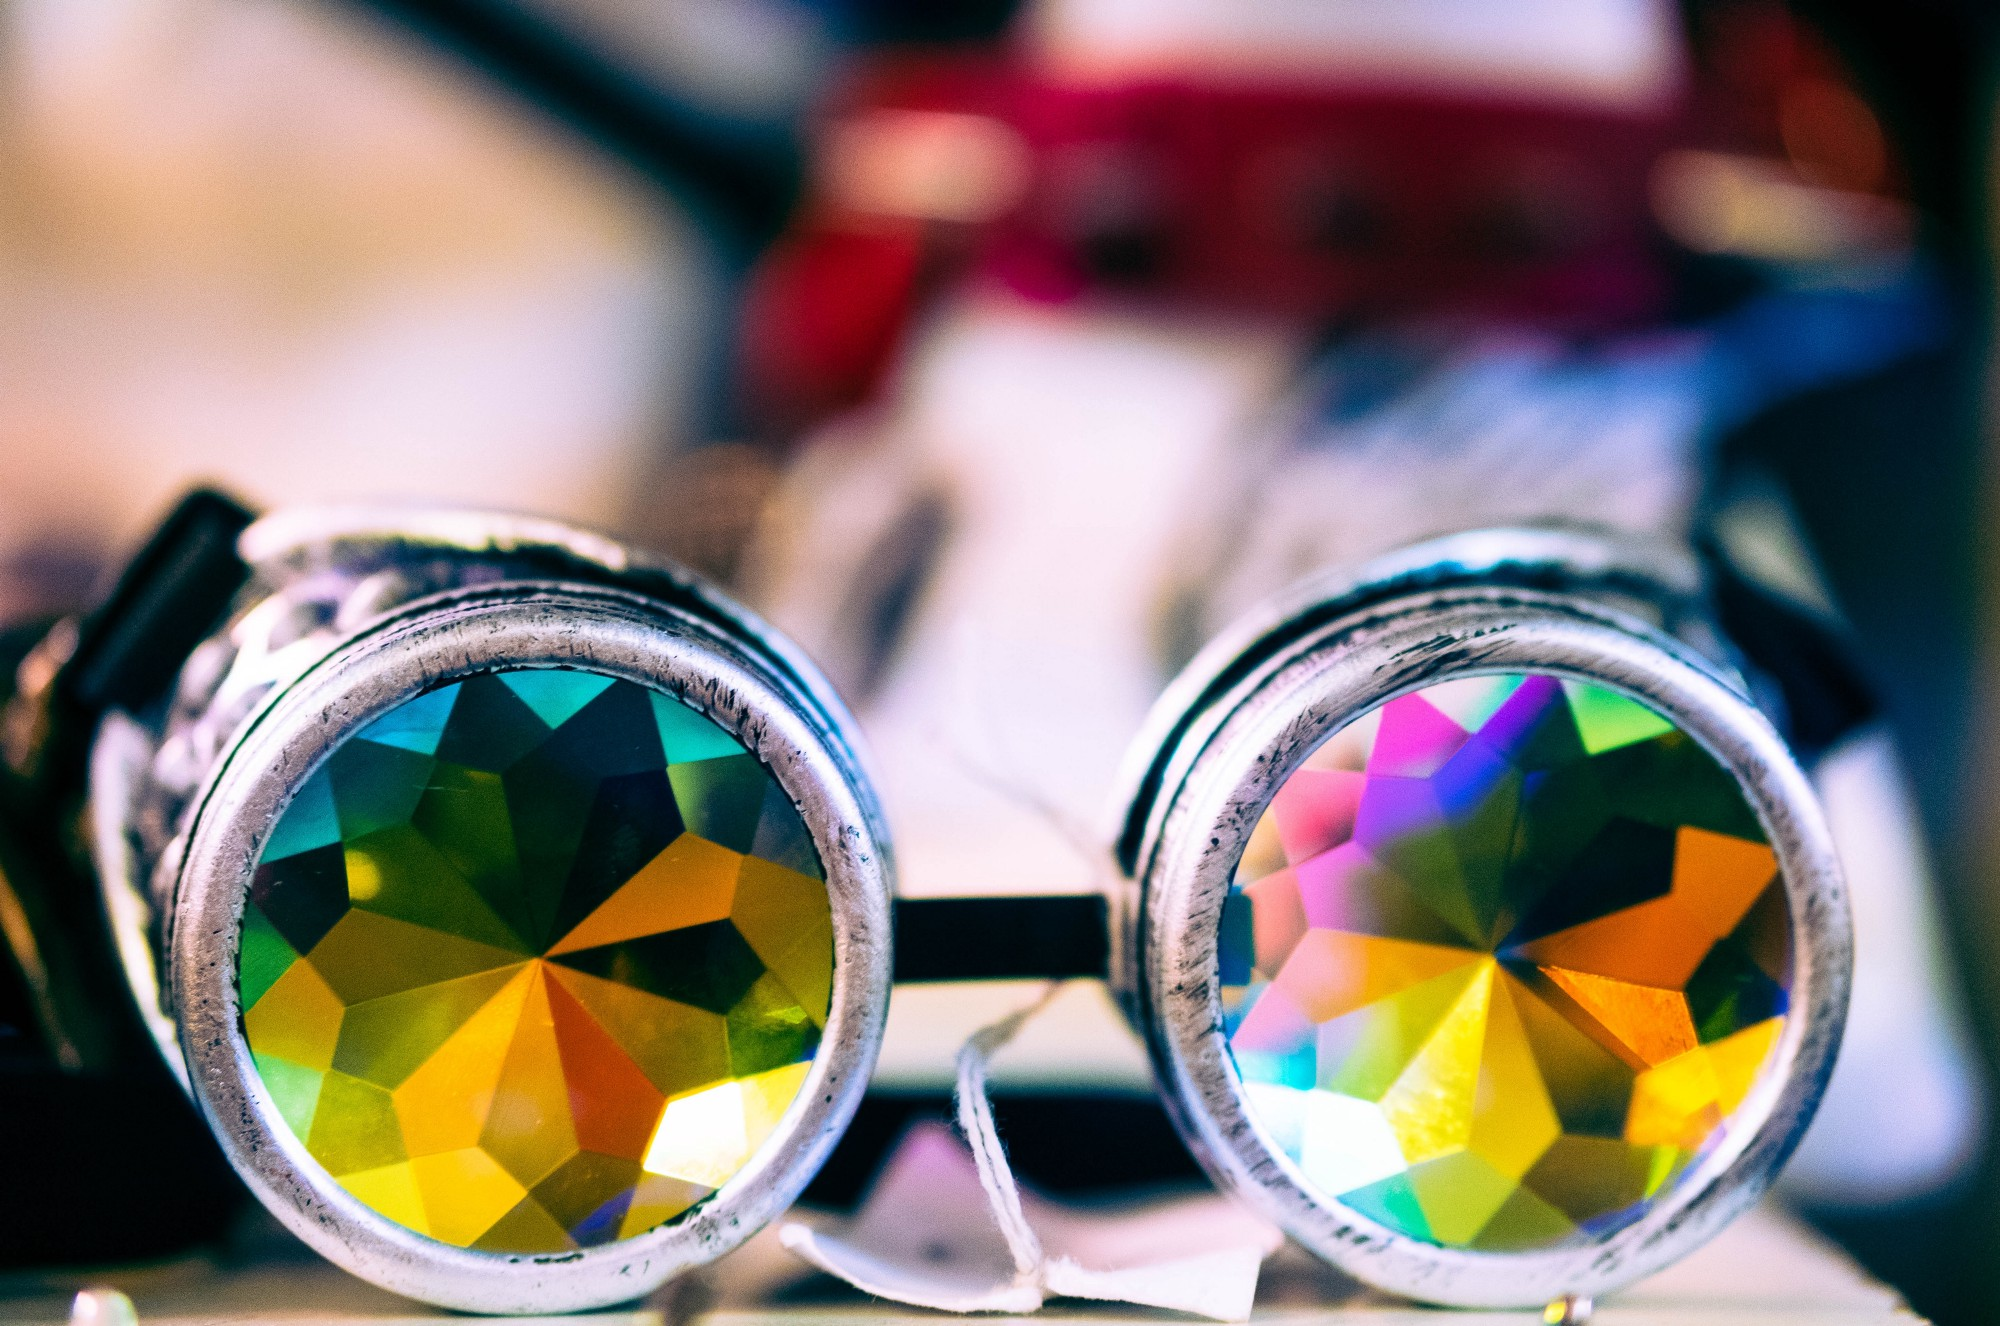 A pair of kaleidoscope glasses with colourful lenses sitting on a table. Background is blurred.